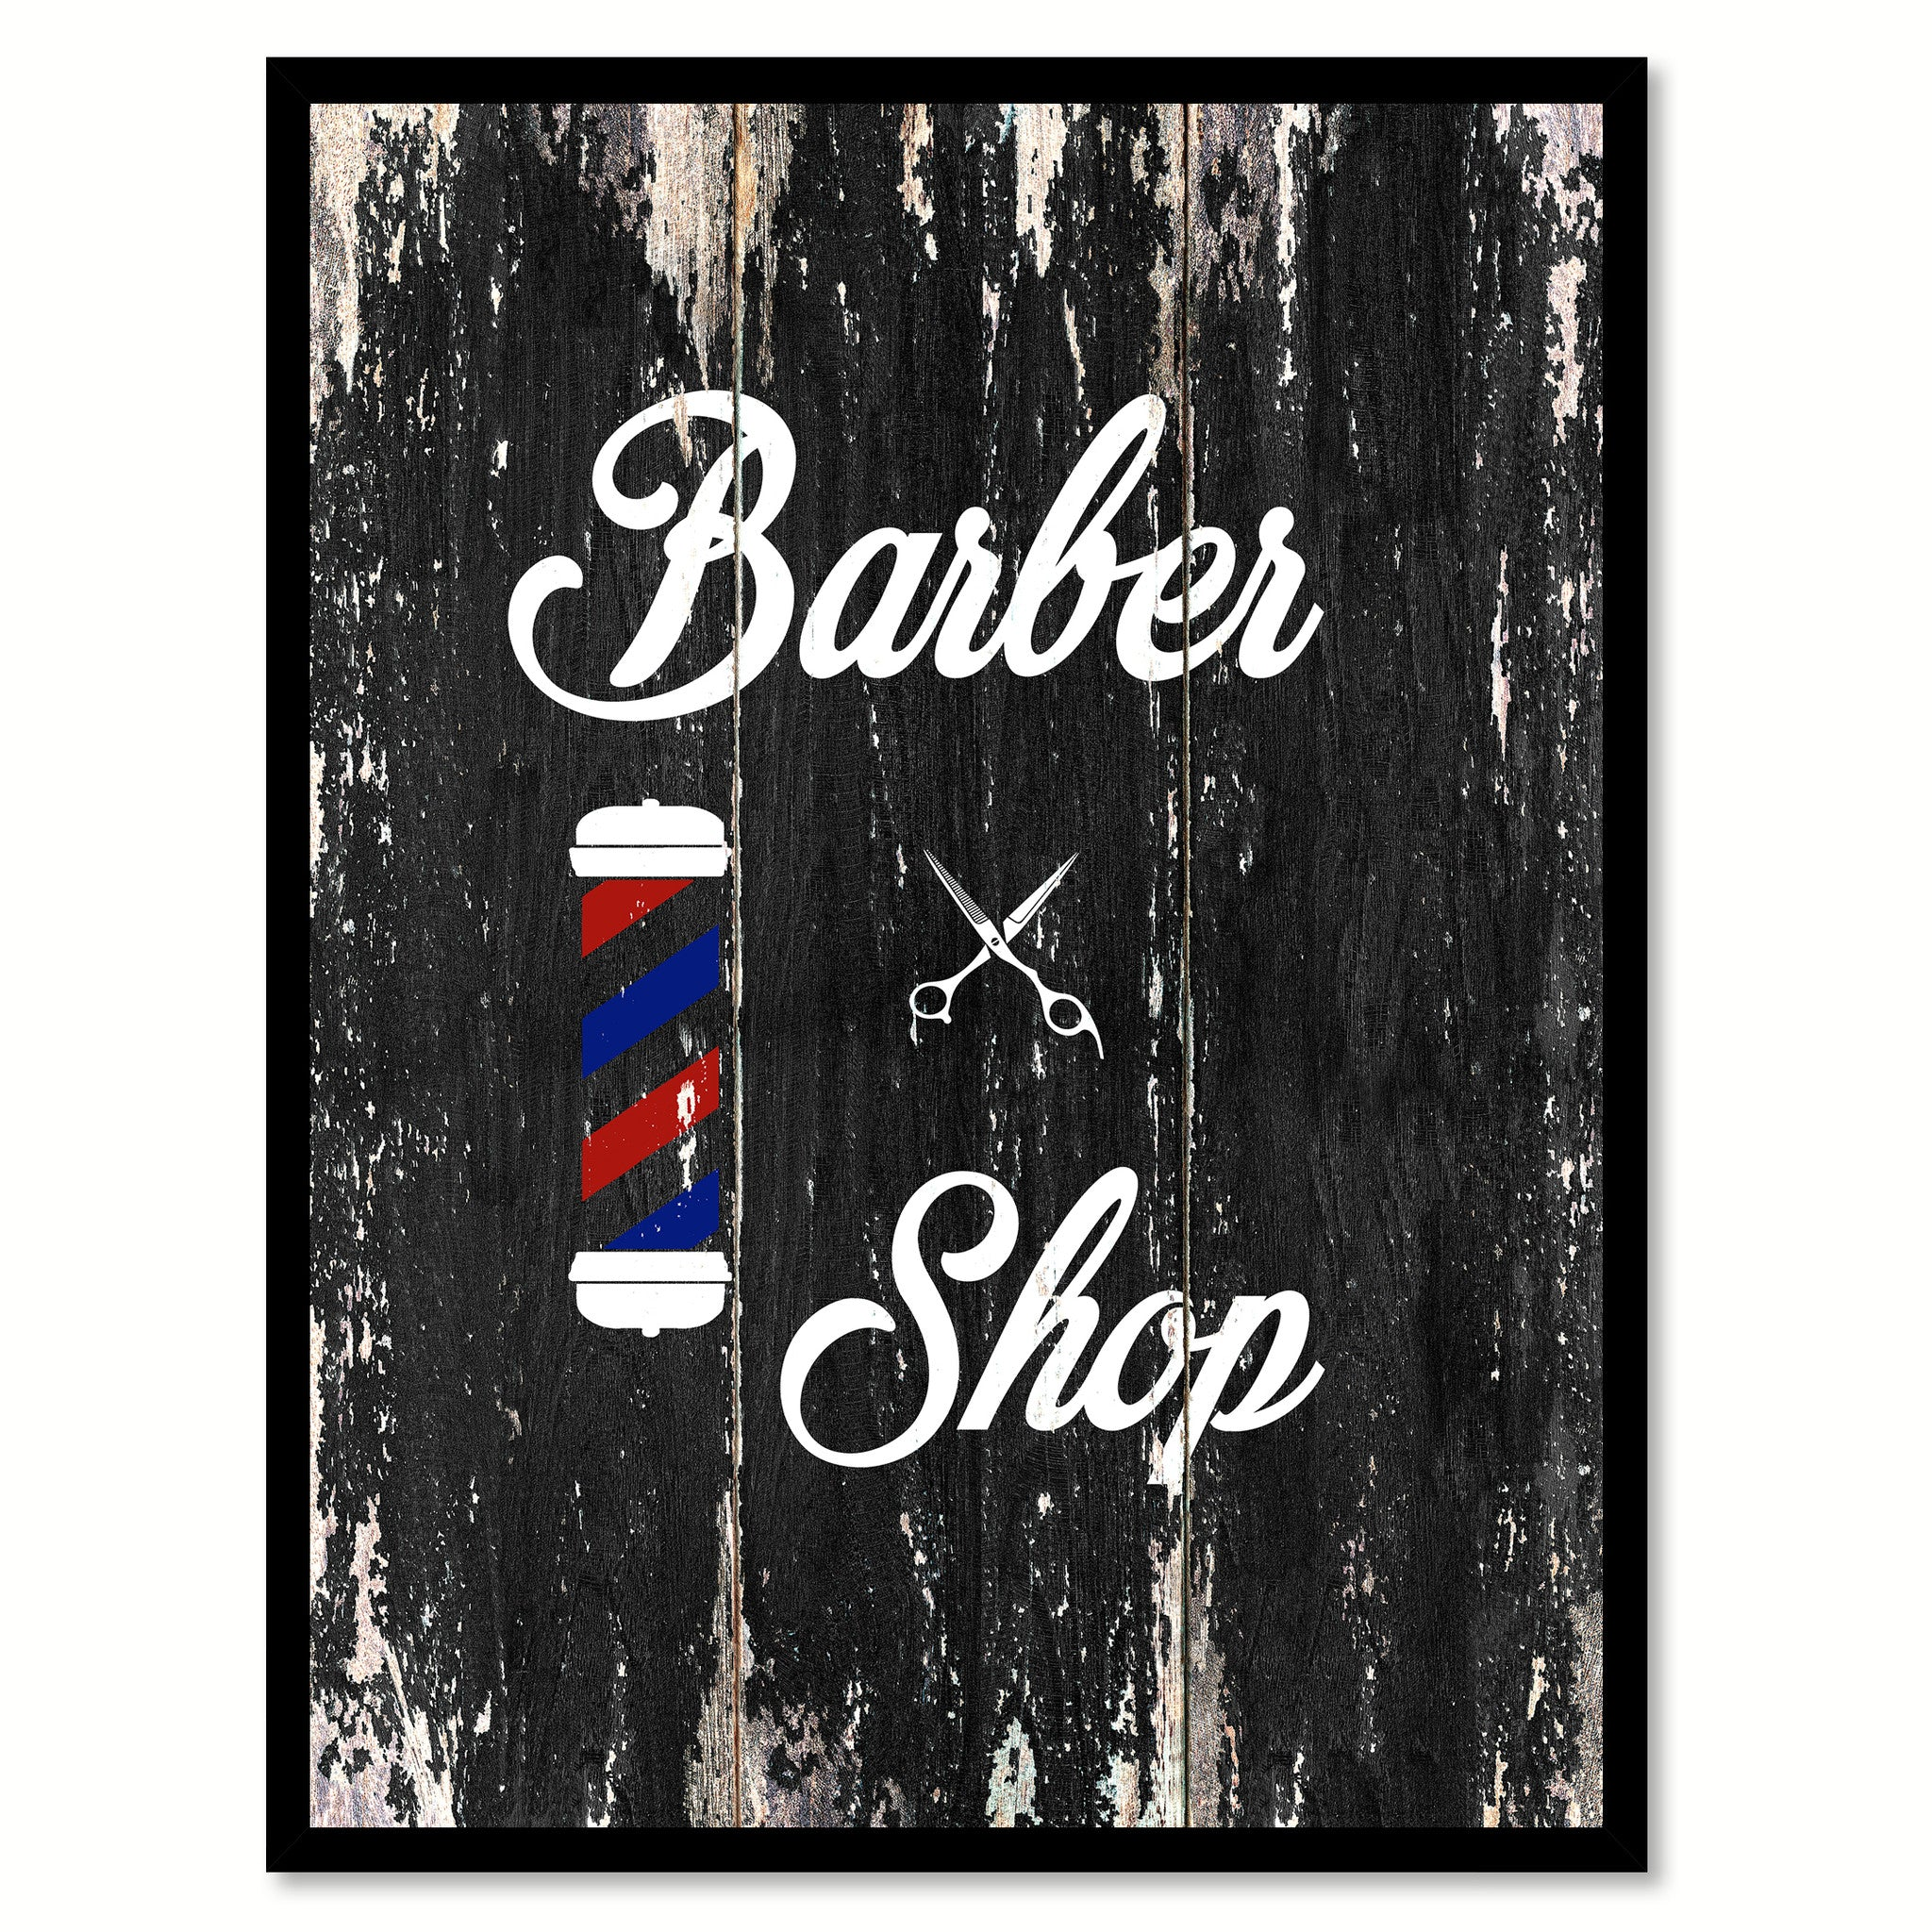 Barber Shop 2  Quote Saying Canvas Print with Picture Frame Home Decor Wall Art